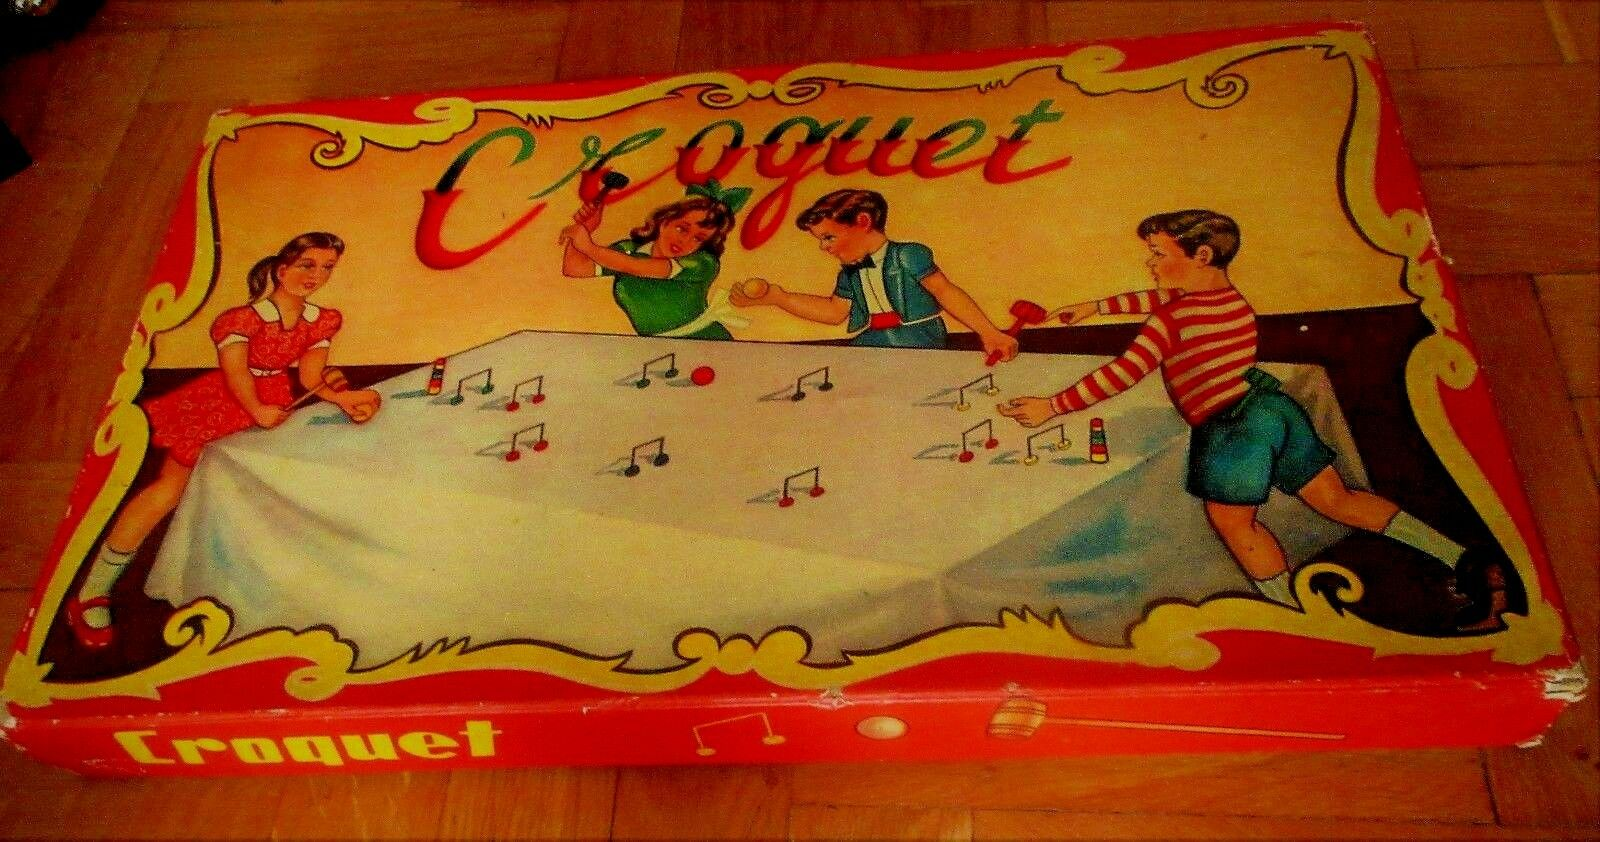 UNIQUE VINTAGE GREEK LITHO HARDBOARD TABLE CROQUET GAME BY EPA 60s